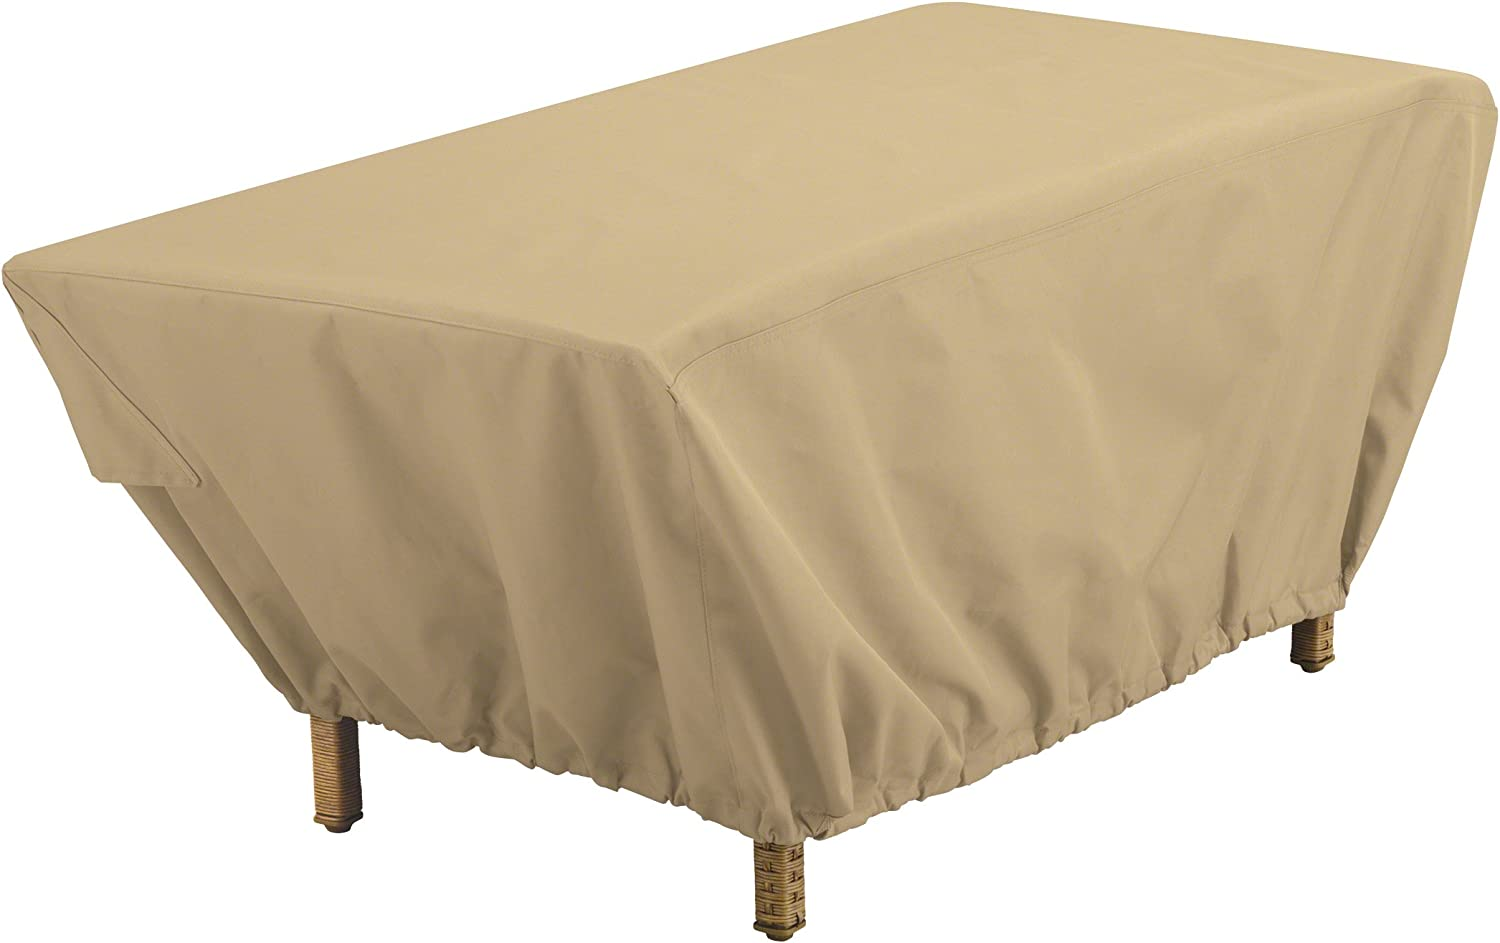 Classic Accessories Terrazzo Water-Resistant 48 Inch Rectangular Patio Coffee Table Cover